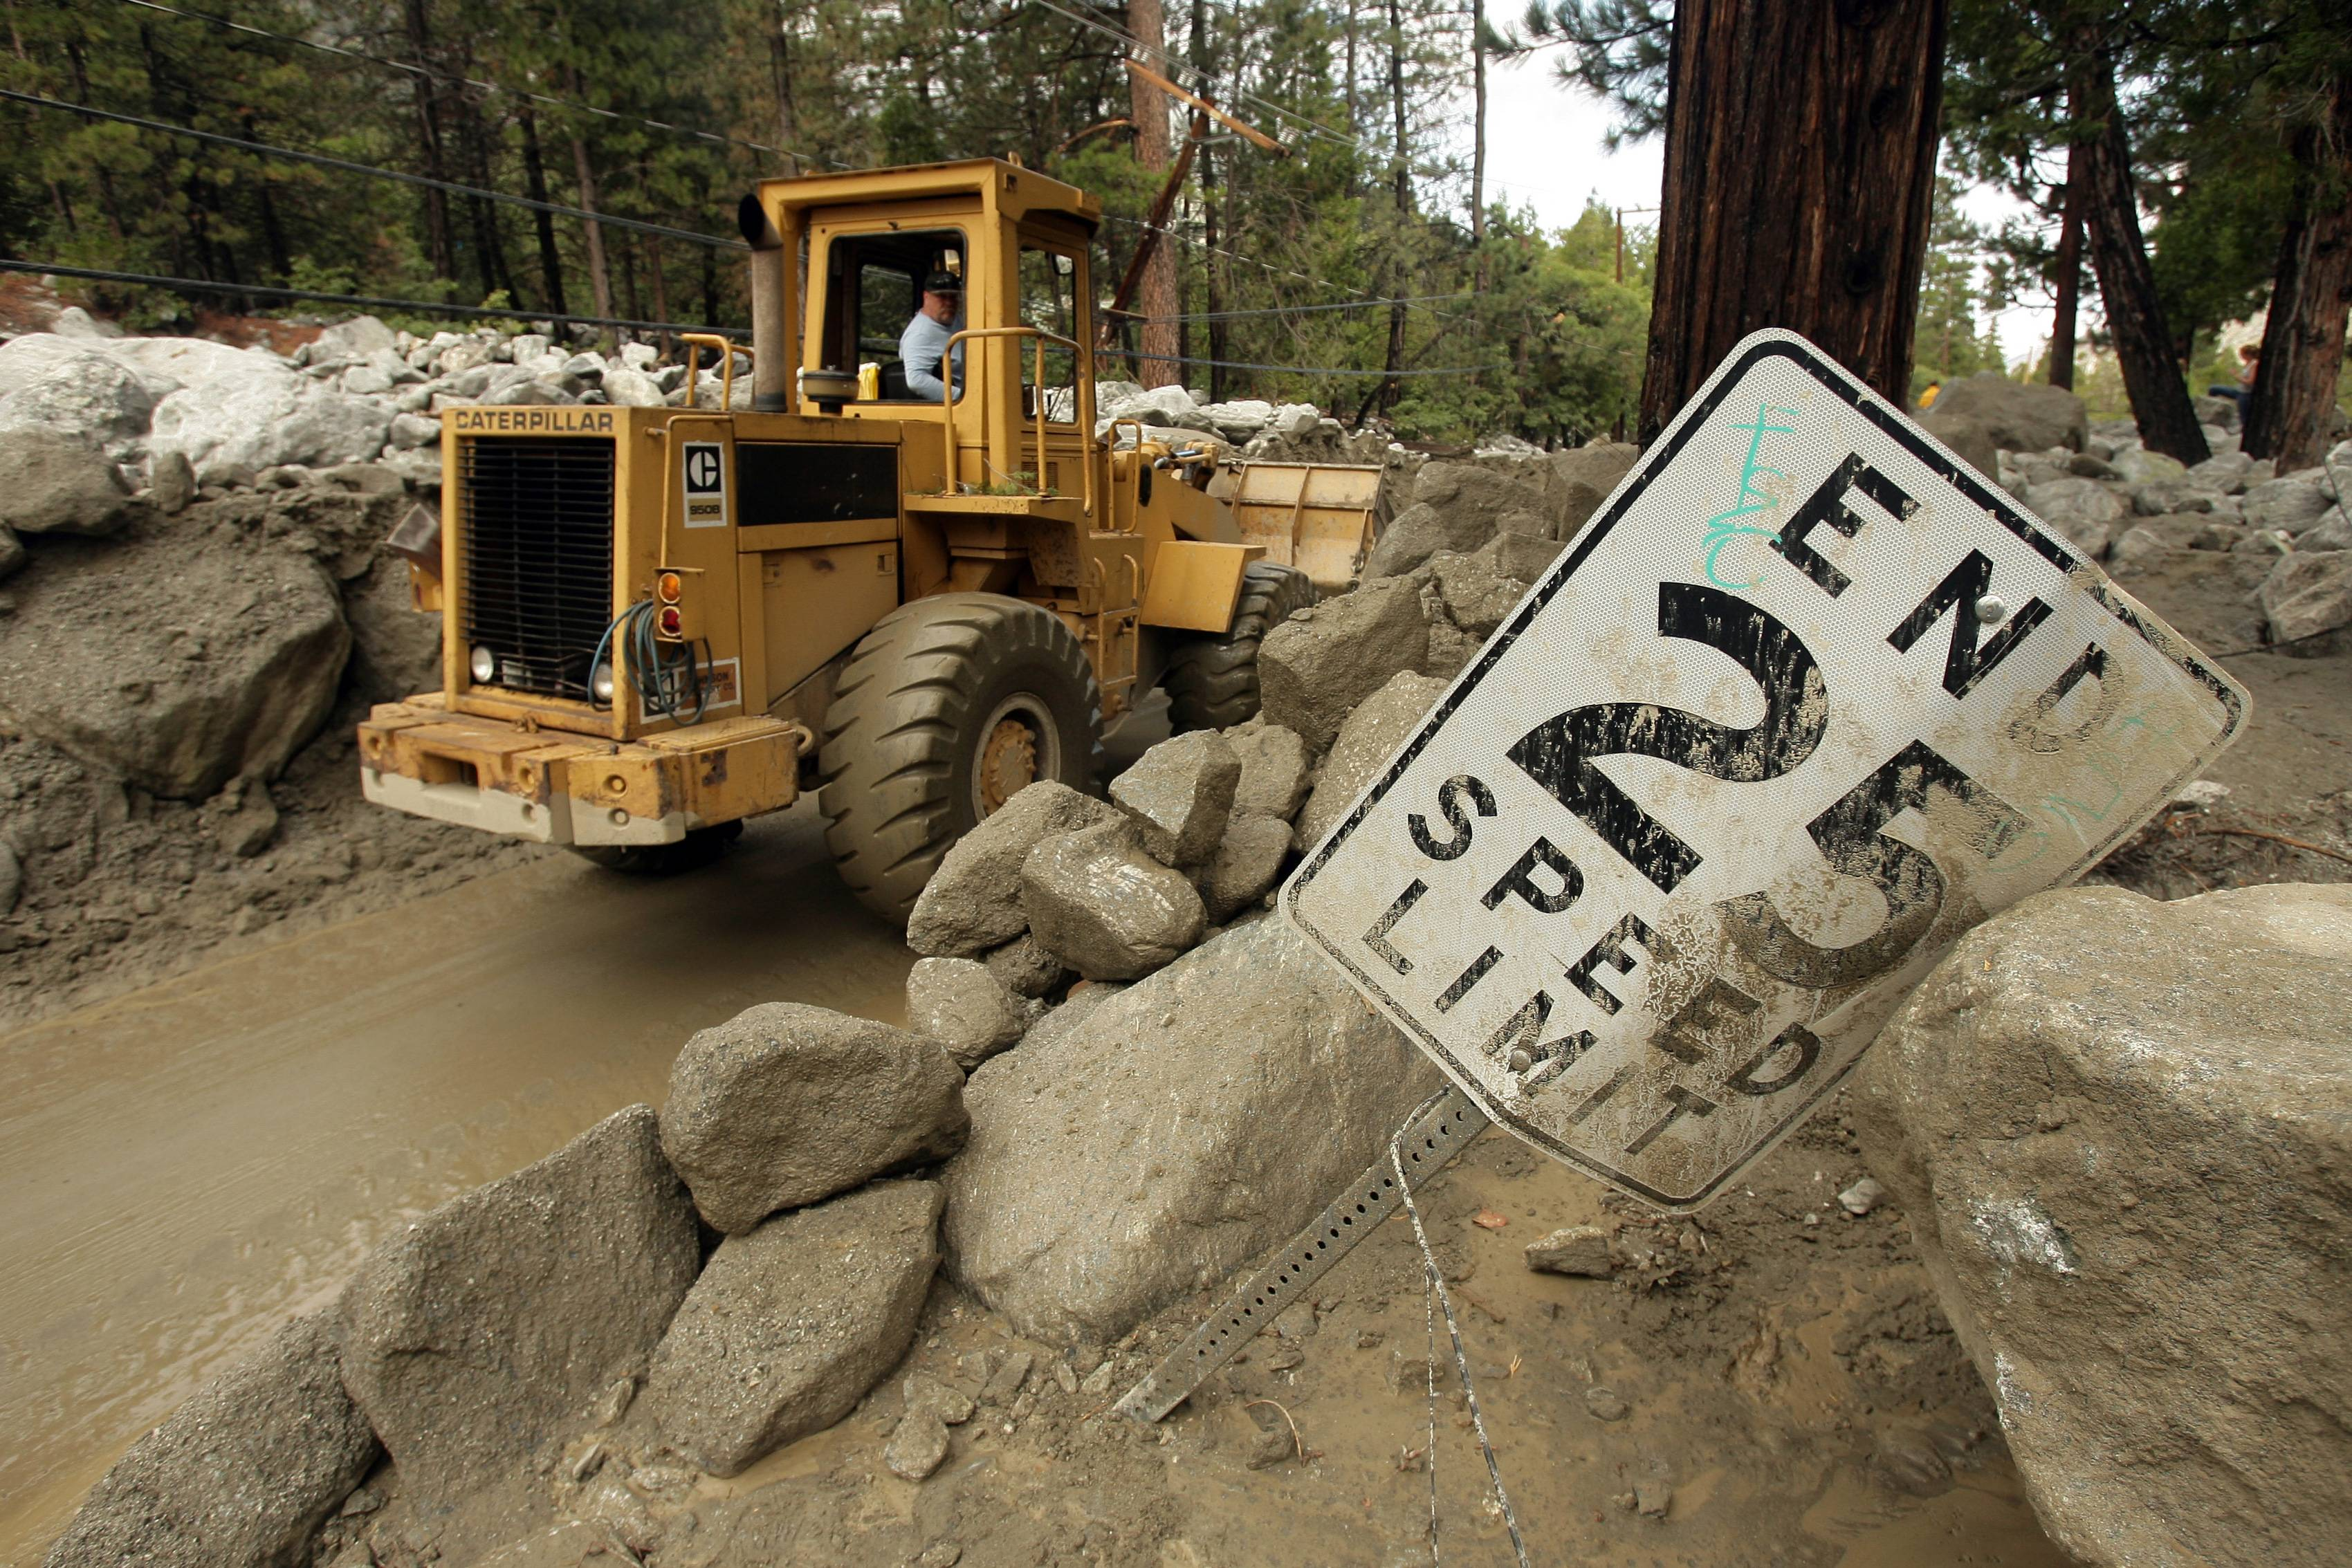 Cleanup begins in aftermath of California floods